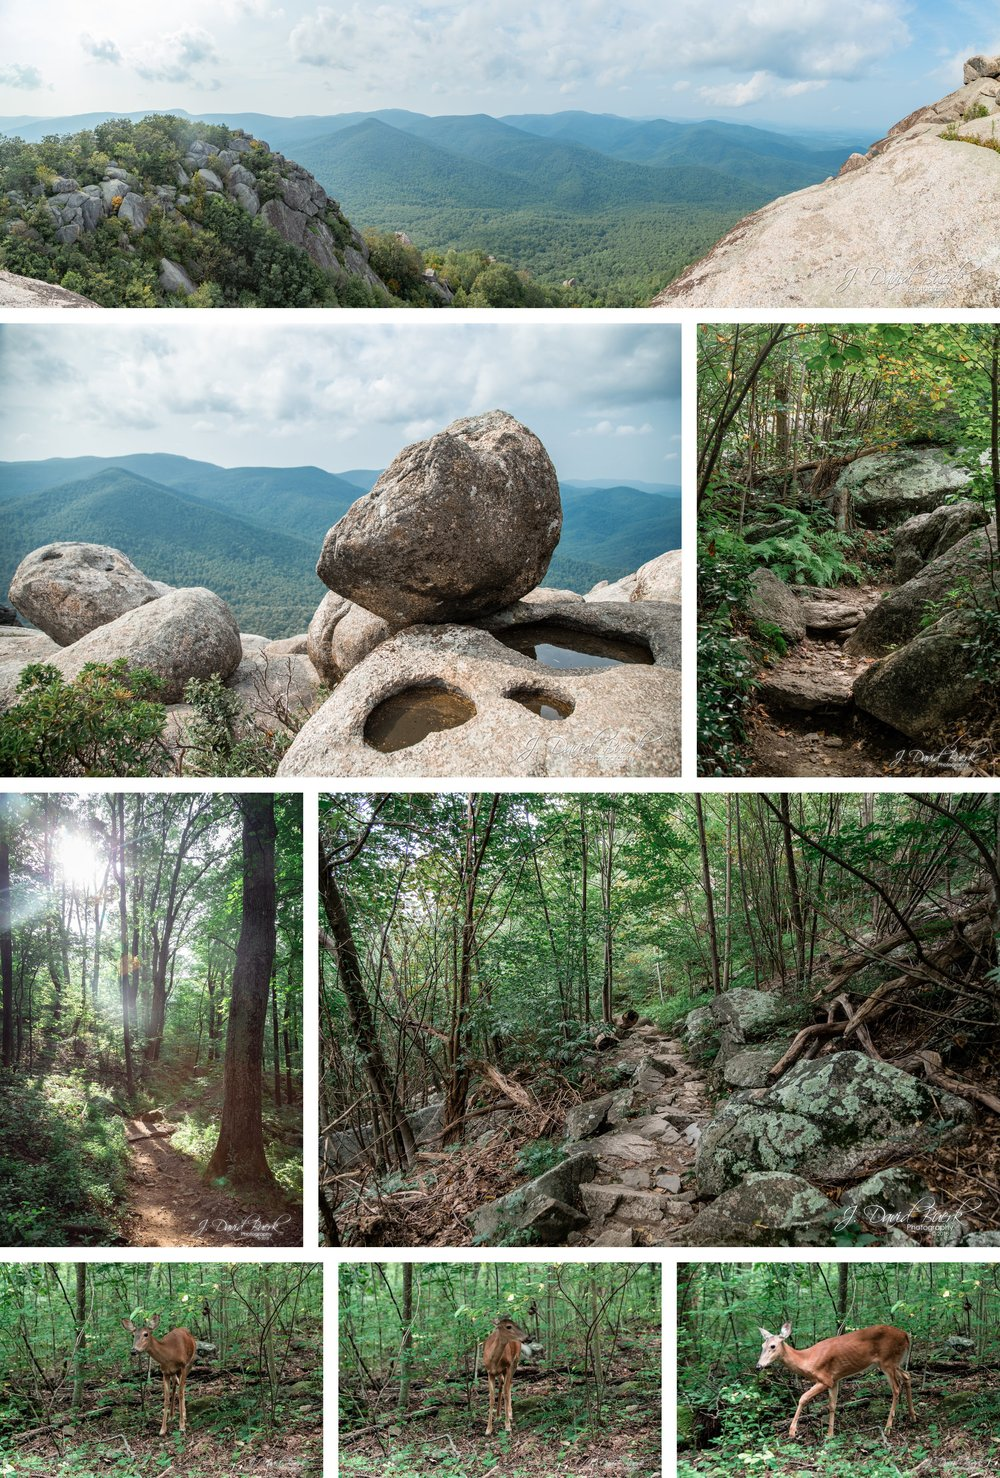 20180826 - Old Rag Mountain August 2018 11.jpg